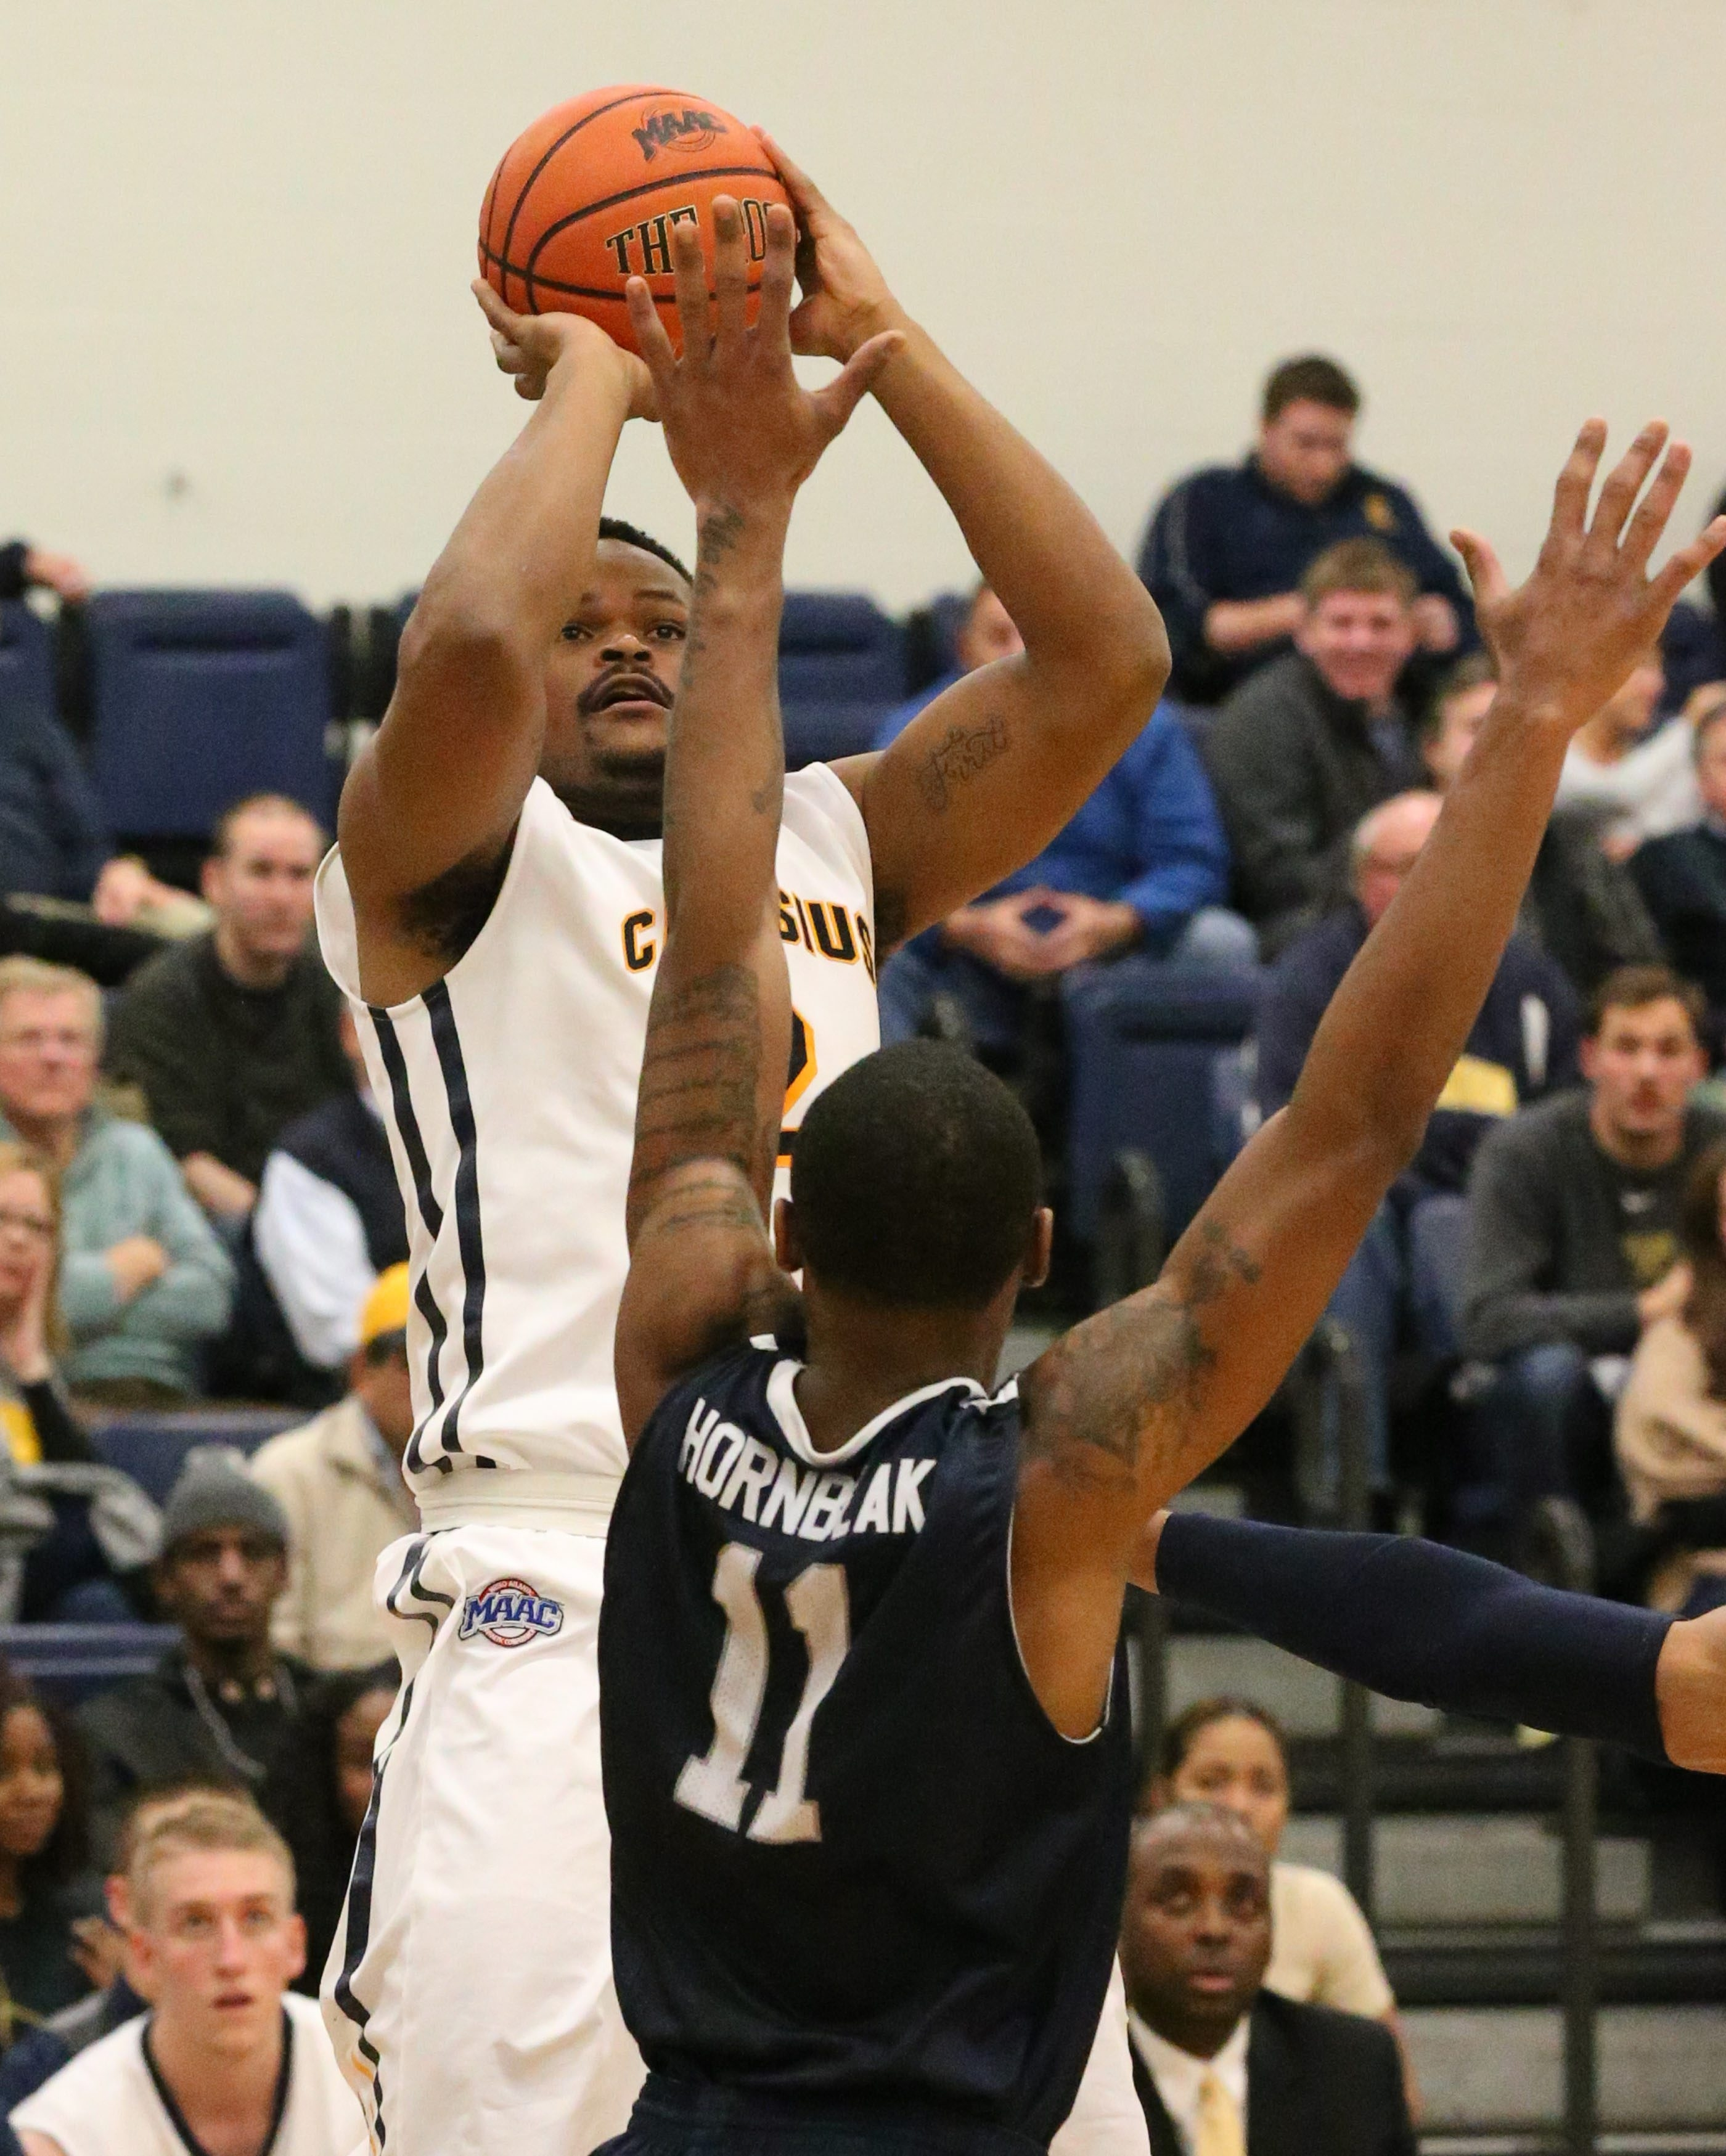 Canisius forward Jermaine Crumpton takes a shot on Monmouth guard Je'lon Hornbeak in the second half.